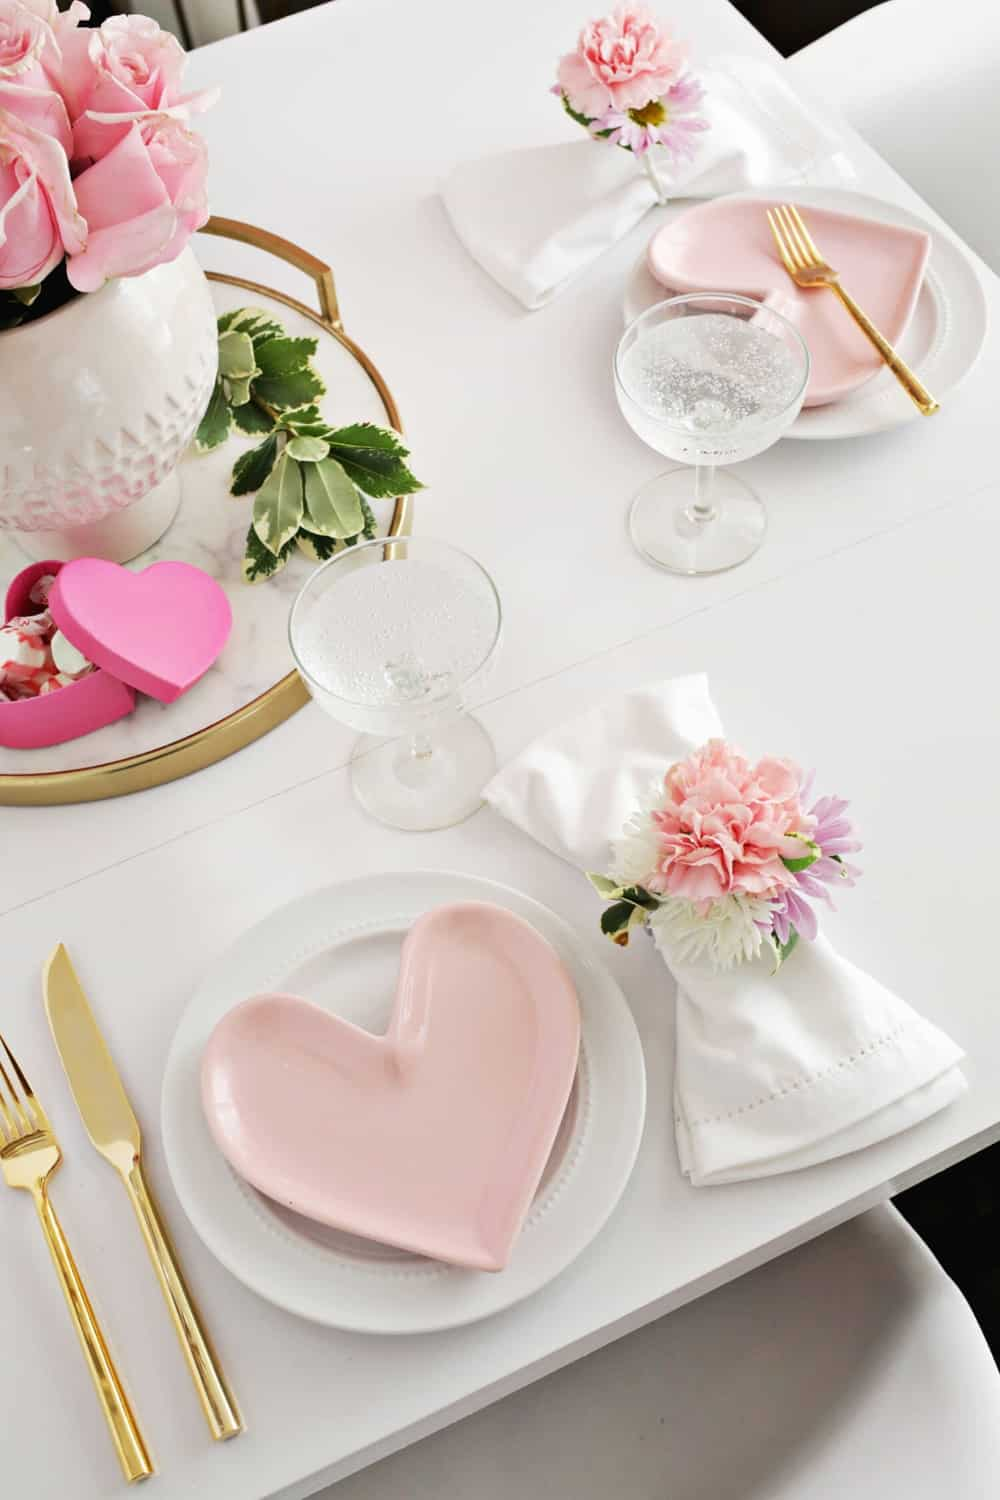 21 Napkin Ring Diy Ideas You May Want To Try